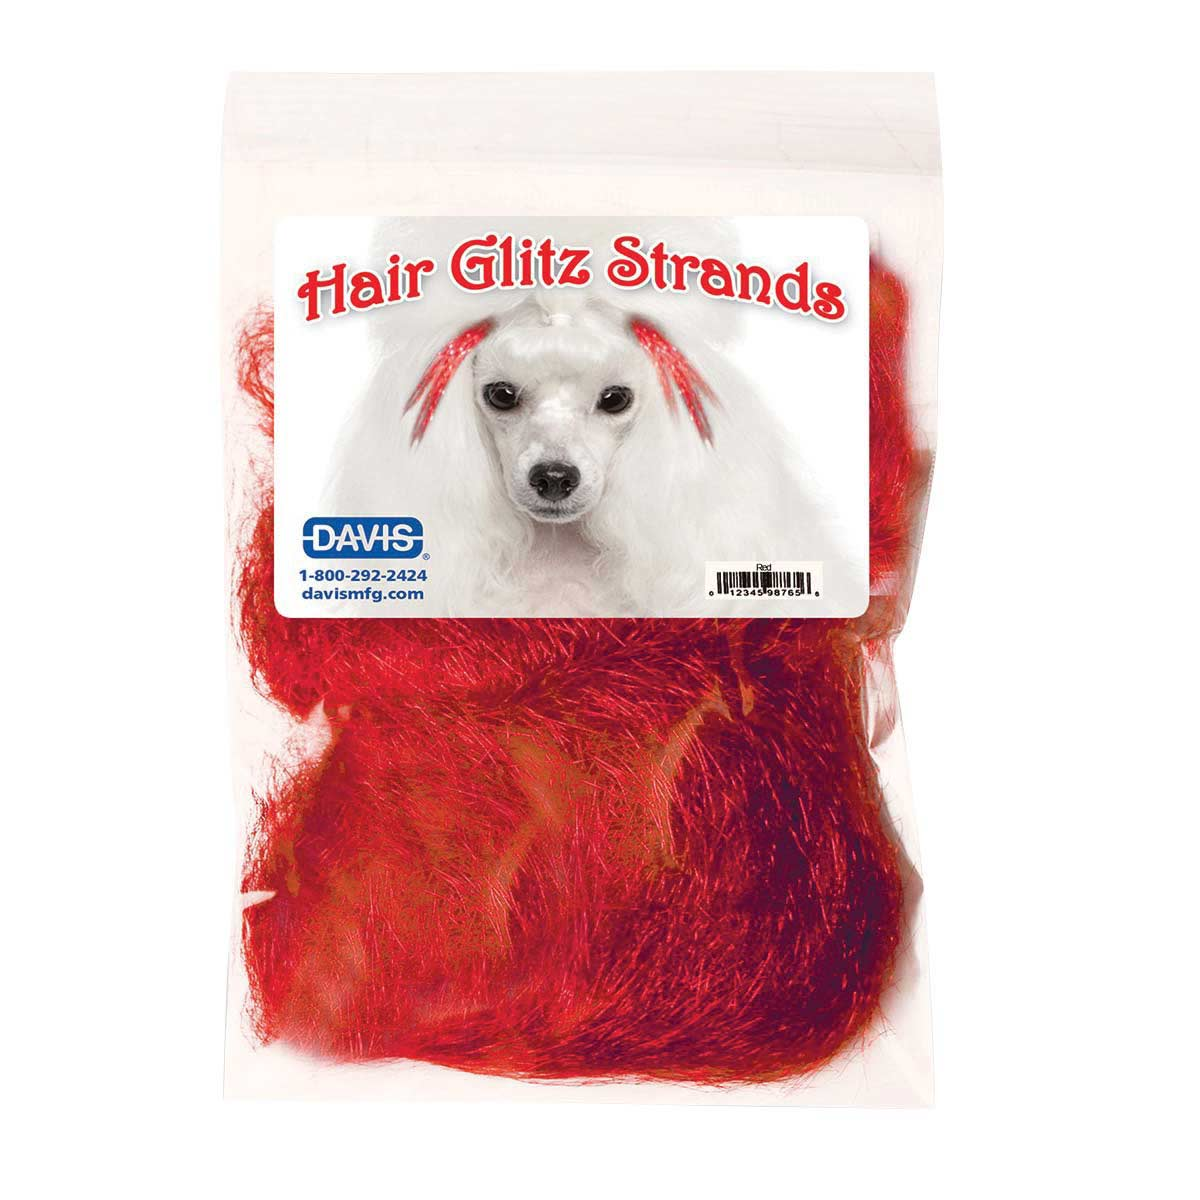 Davis Red Hair Glitz Strands for Dog Grooming